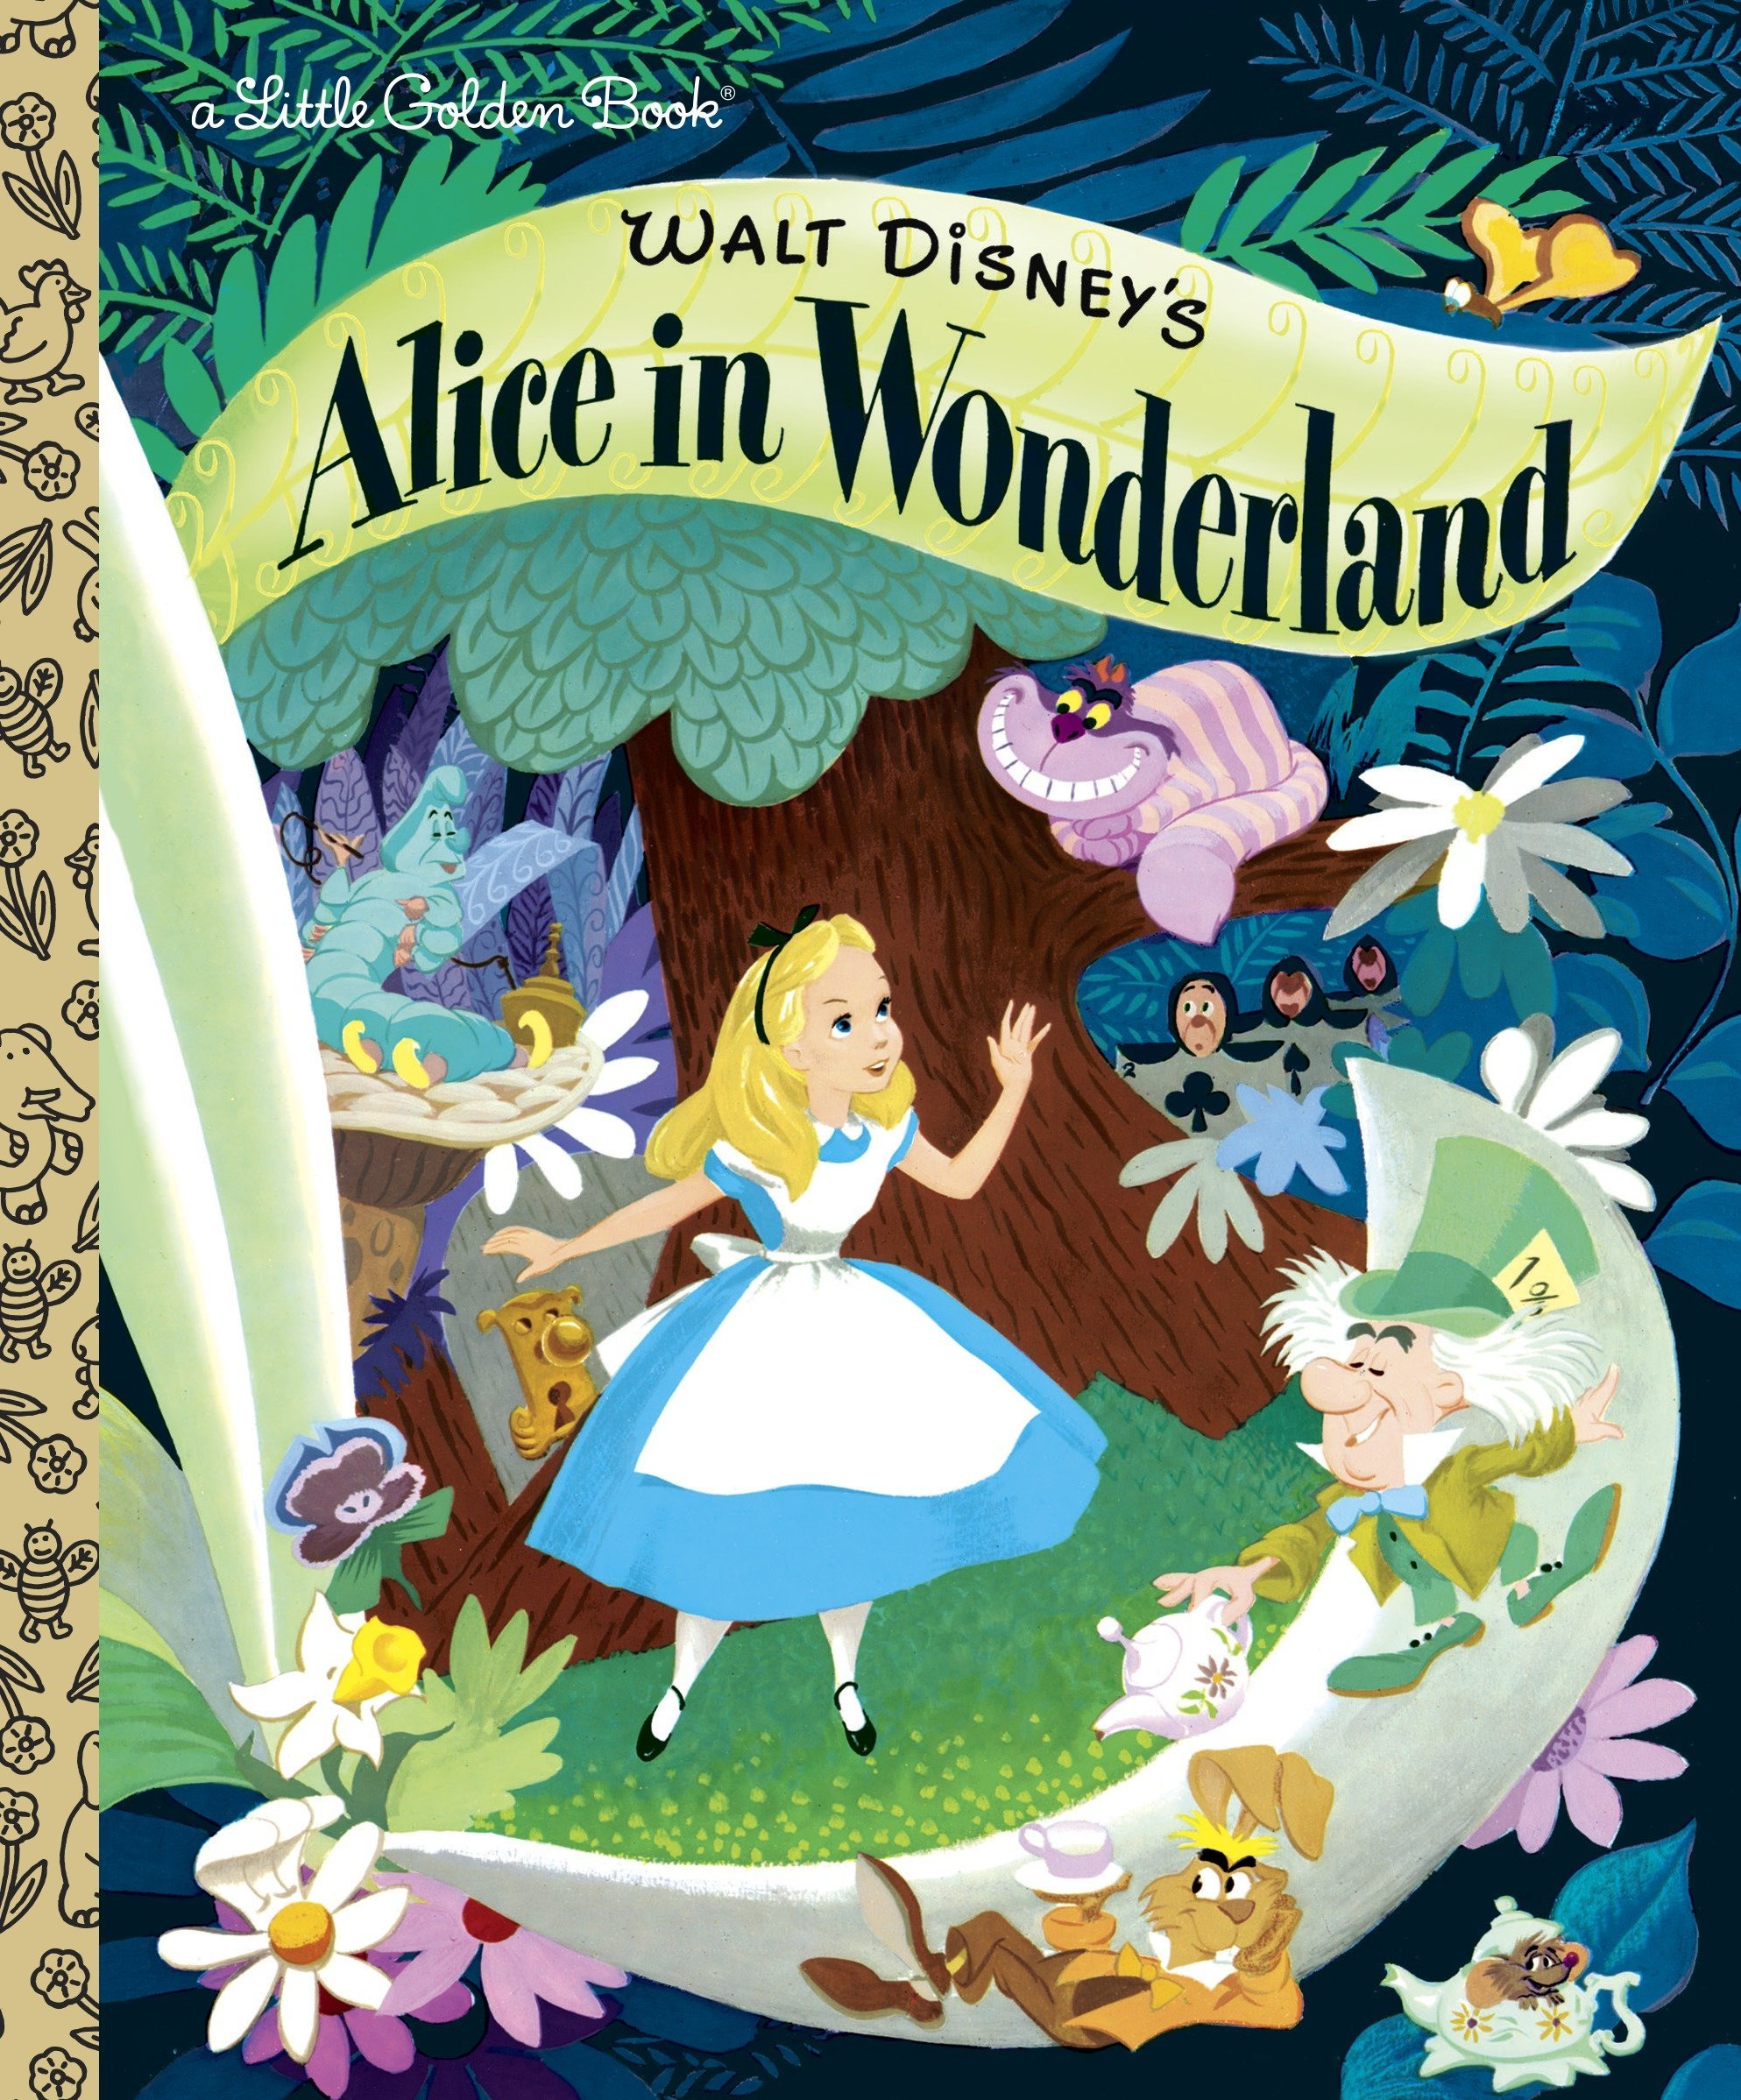 Walt Disney's Alice in Wonderland (Little Golden Books) Hardcover – January 5, 2010 RH Disney Golden/Disney 0736426701 9780736426701